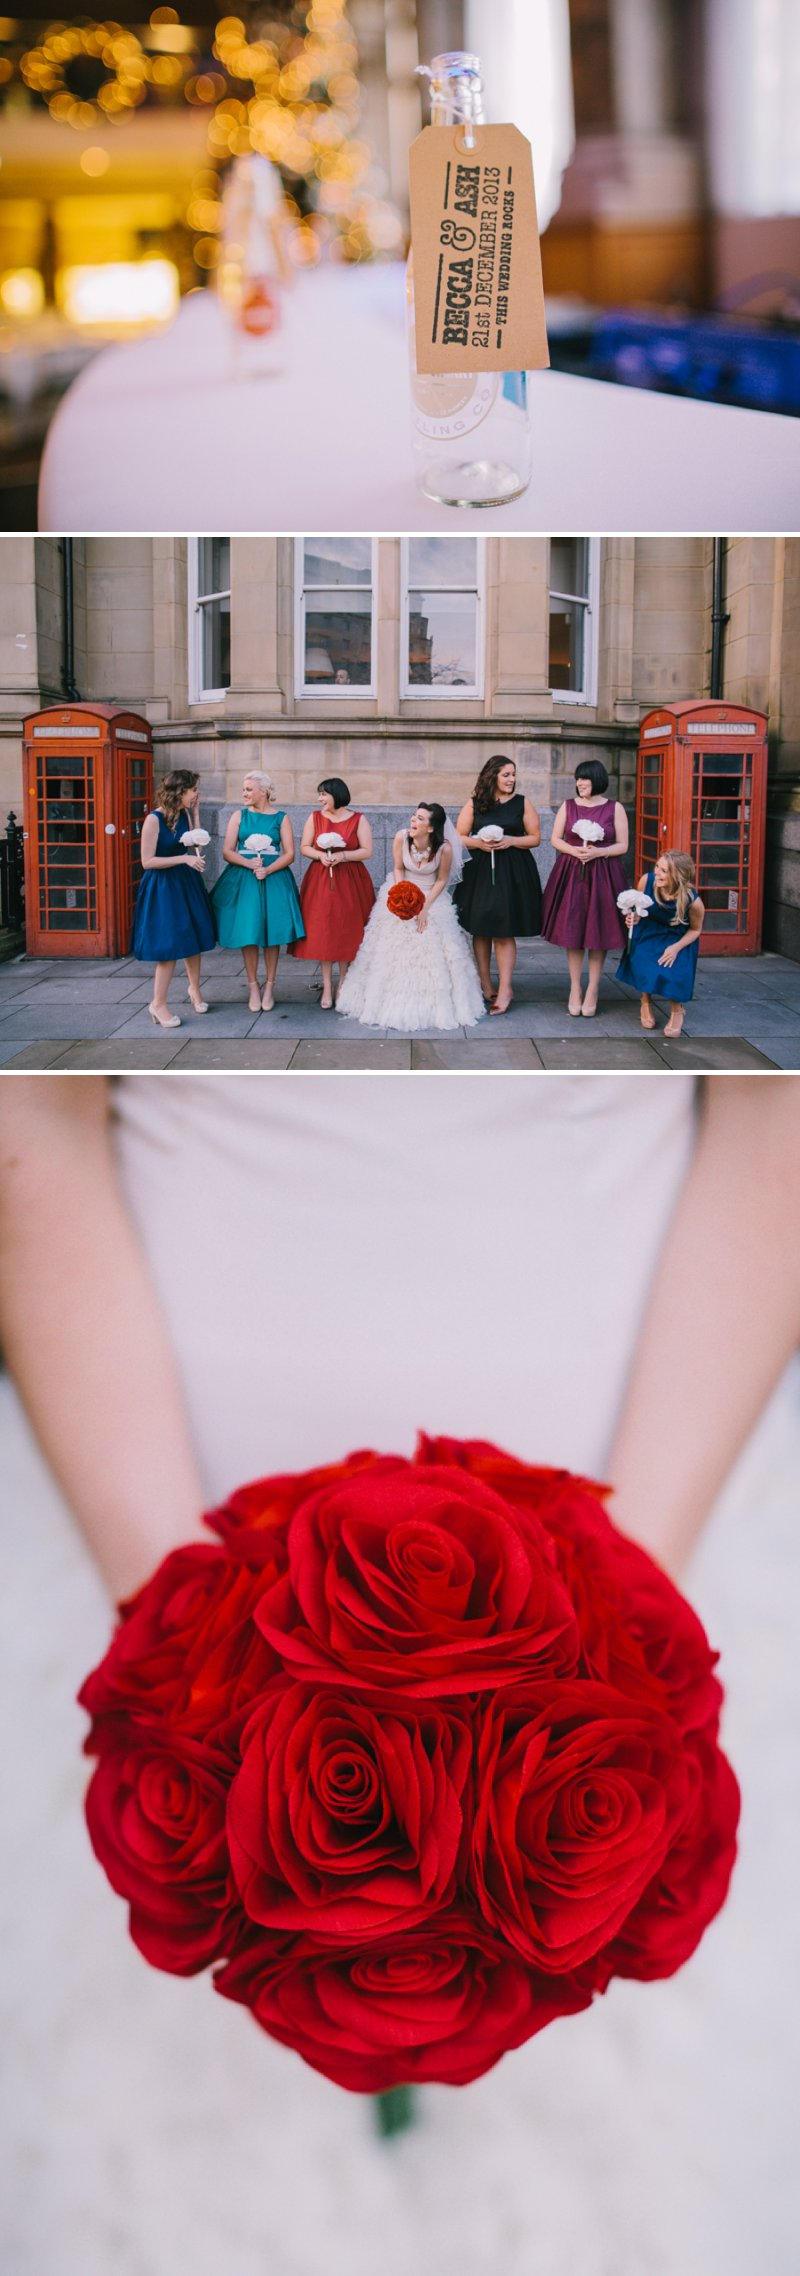 Contemporary Christmas Wedding At Aspire Leeds With Bride In Vivienne Westwood Pumps And A Statement J Crew Necklace With Groom In Ted Baker Suit And Bridesmaids In Brightly Coloured Lindy Bop Dresses Images From Chris Barber Photography 1 Always Love.